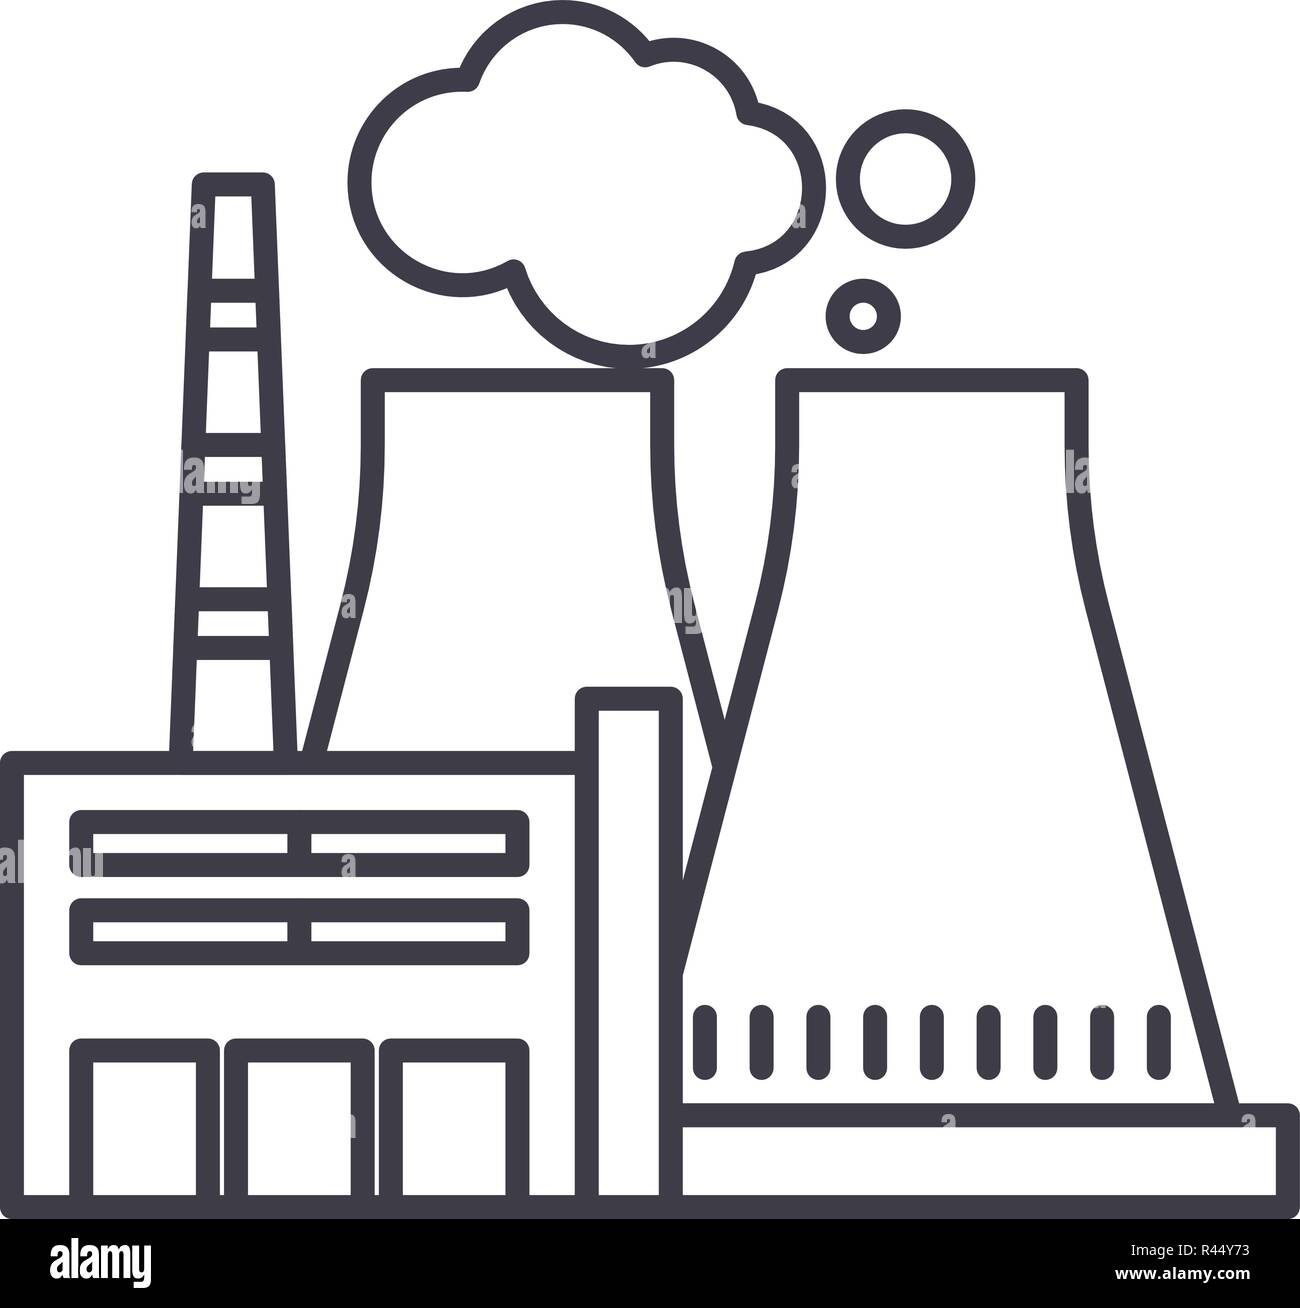 thermal power plant line icon concept thermal power plant vector Thermal Power Production thermal power plant line icon concept thermal power plant vector linear illustration, symbol, sign